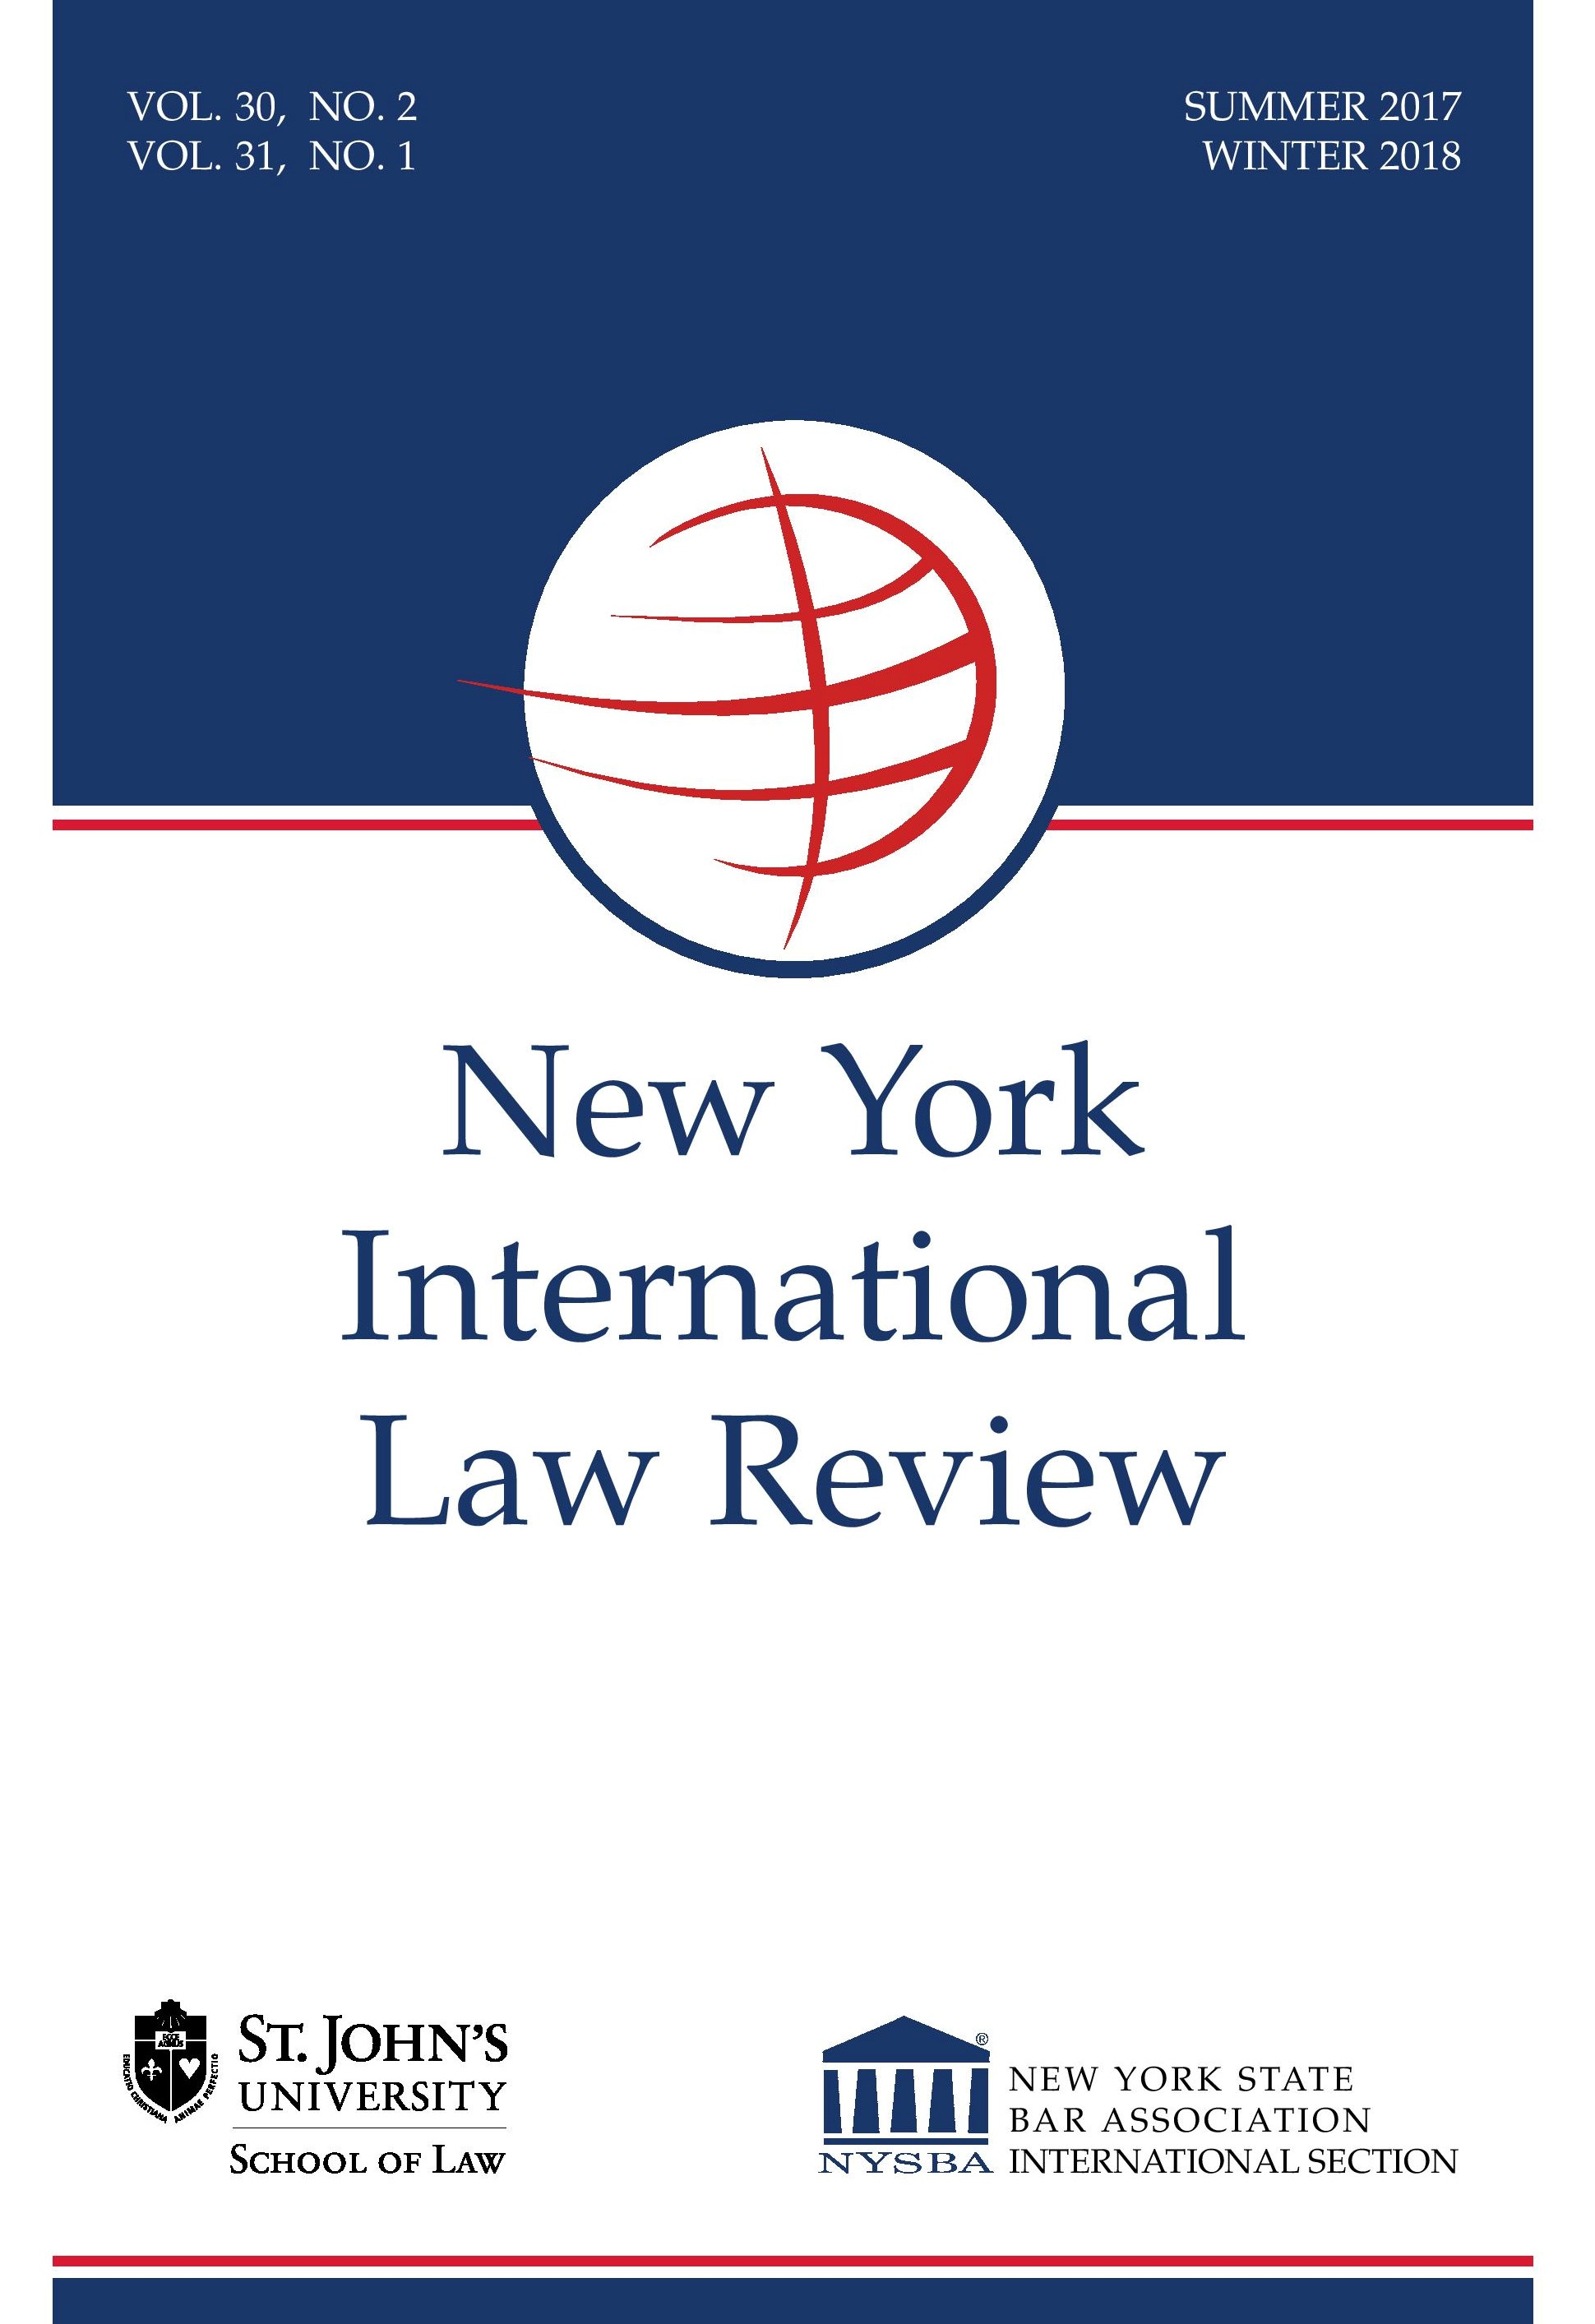 New York International Law Review